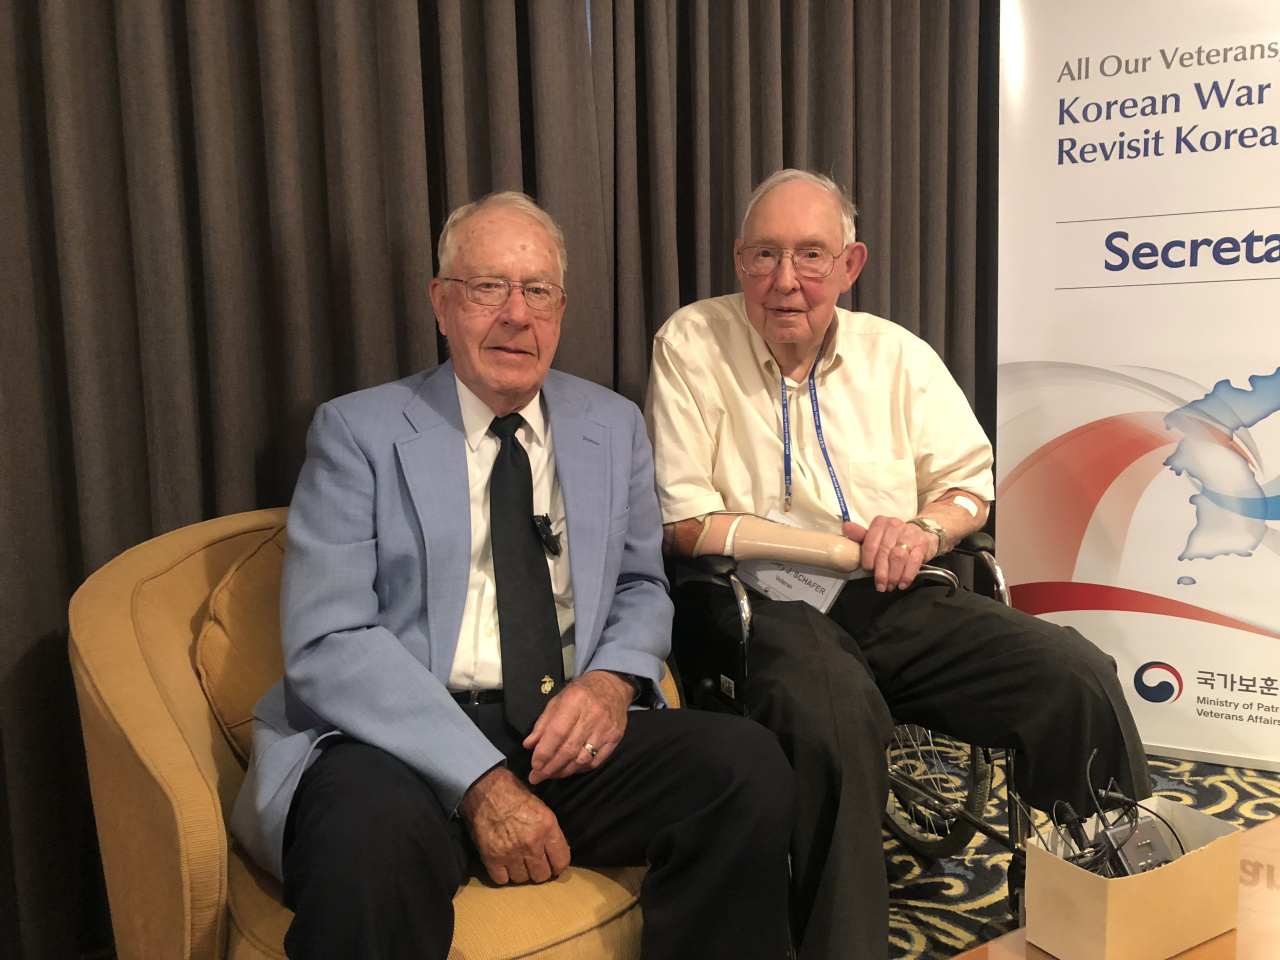 Korean War veterans Milton Walker (left) and Henry Schafer from the United States pose during a joint interview with The Korea Herald, in Seoul on Friday. (Jo He-rim/The Korea Herald)